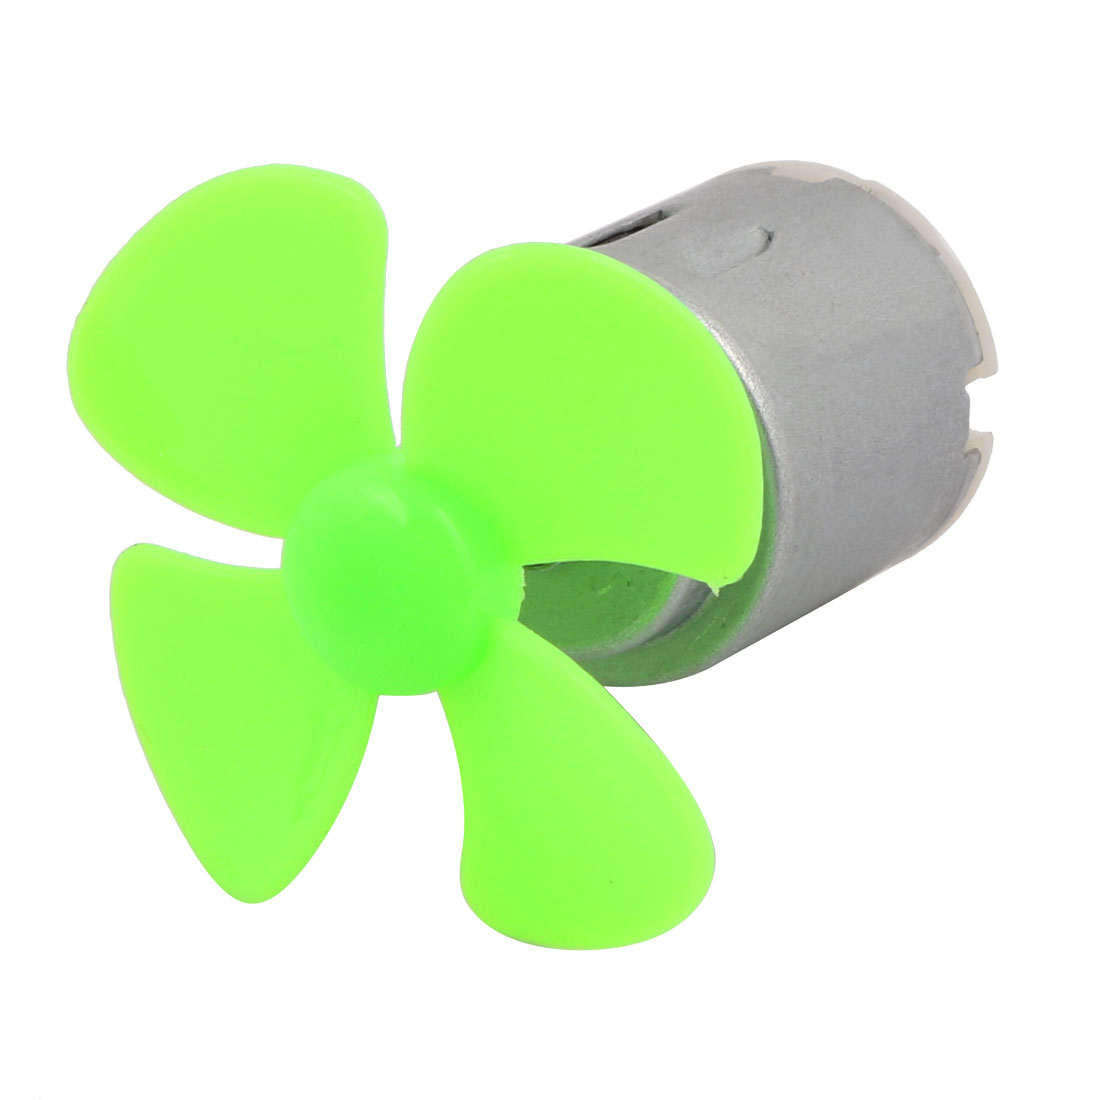 DC 3V 0.13A 13000RPM Strong Force Motor 4 Blades 40mm Green Propeller for RC Aircraft